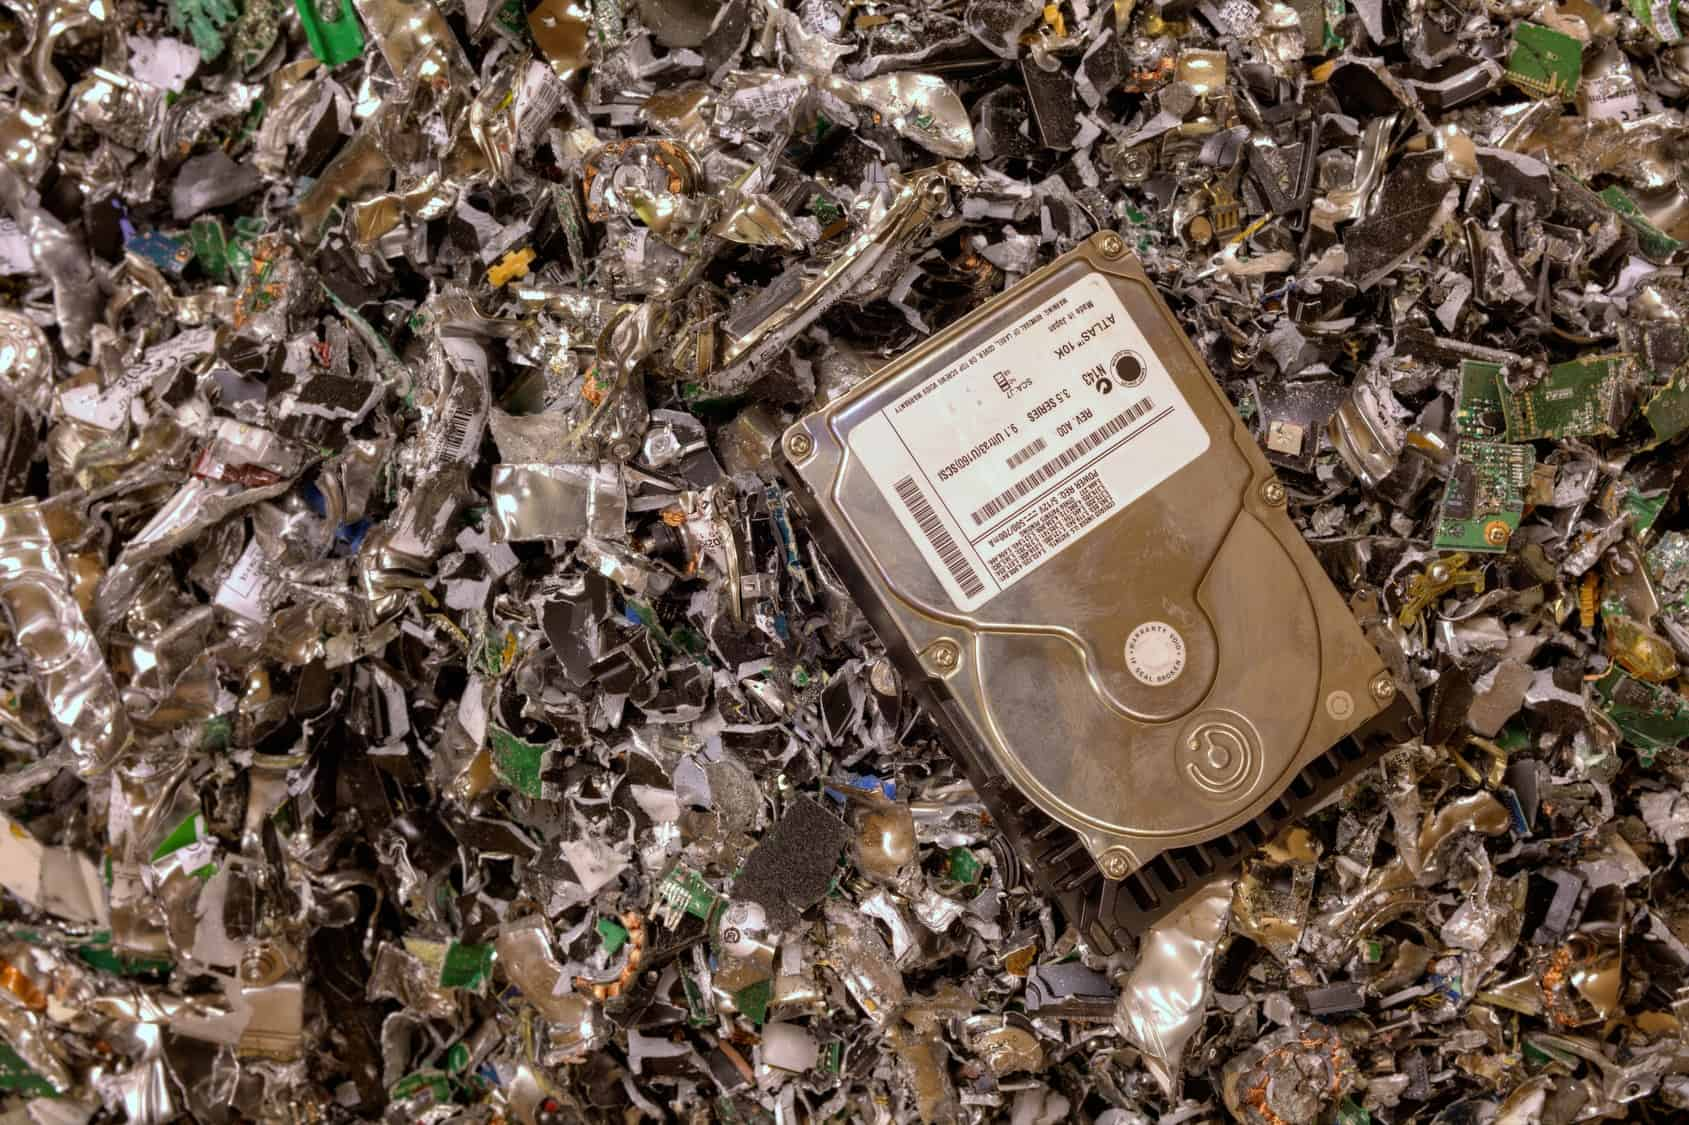 Recycling - Crushed hard drives after going through onsite data destruction